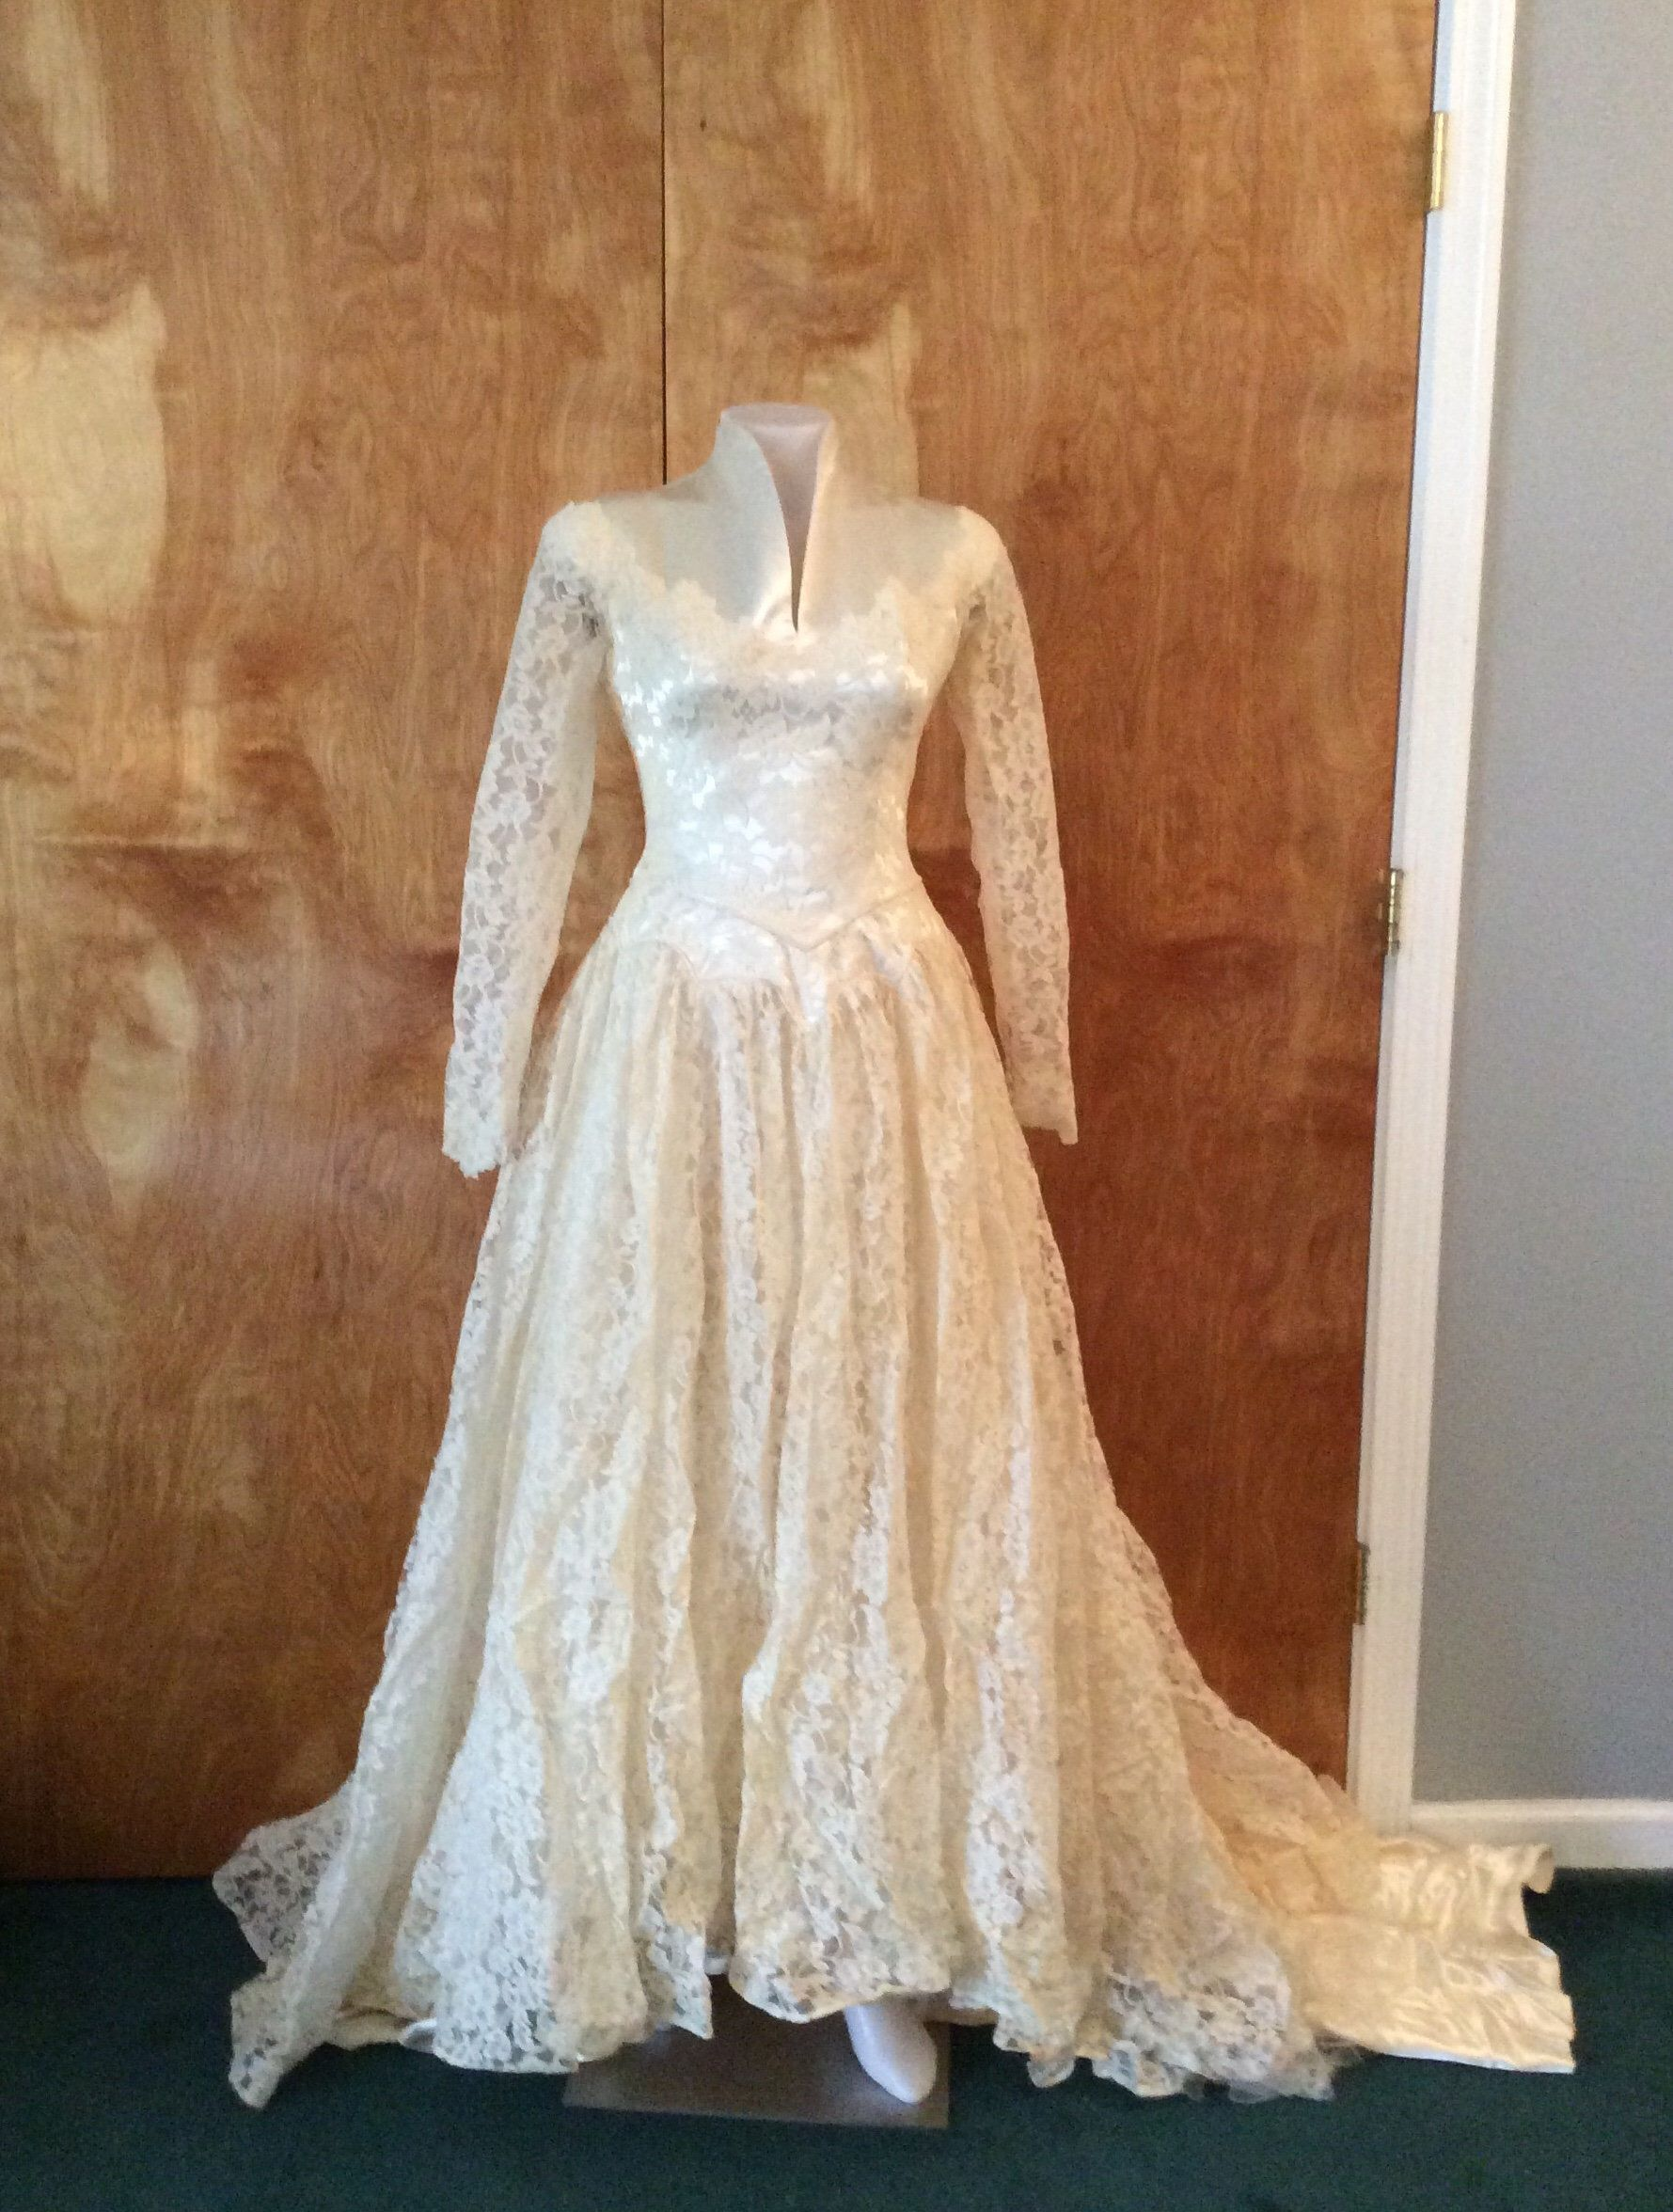 Vintage wedding dress 1950's wedding gown champagne satin and lace long sleeves train vintage bridal headpiece vintage bride #bridalheadpieces